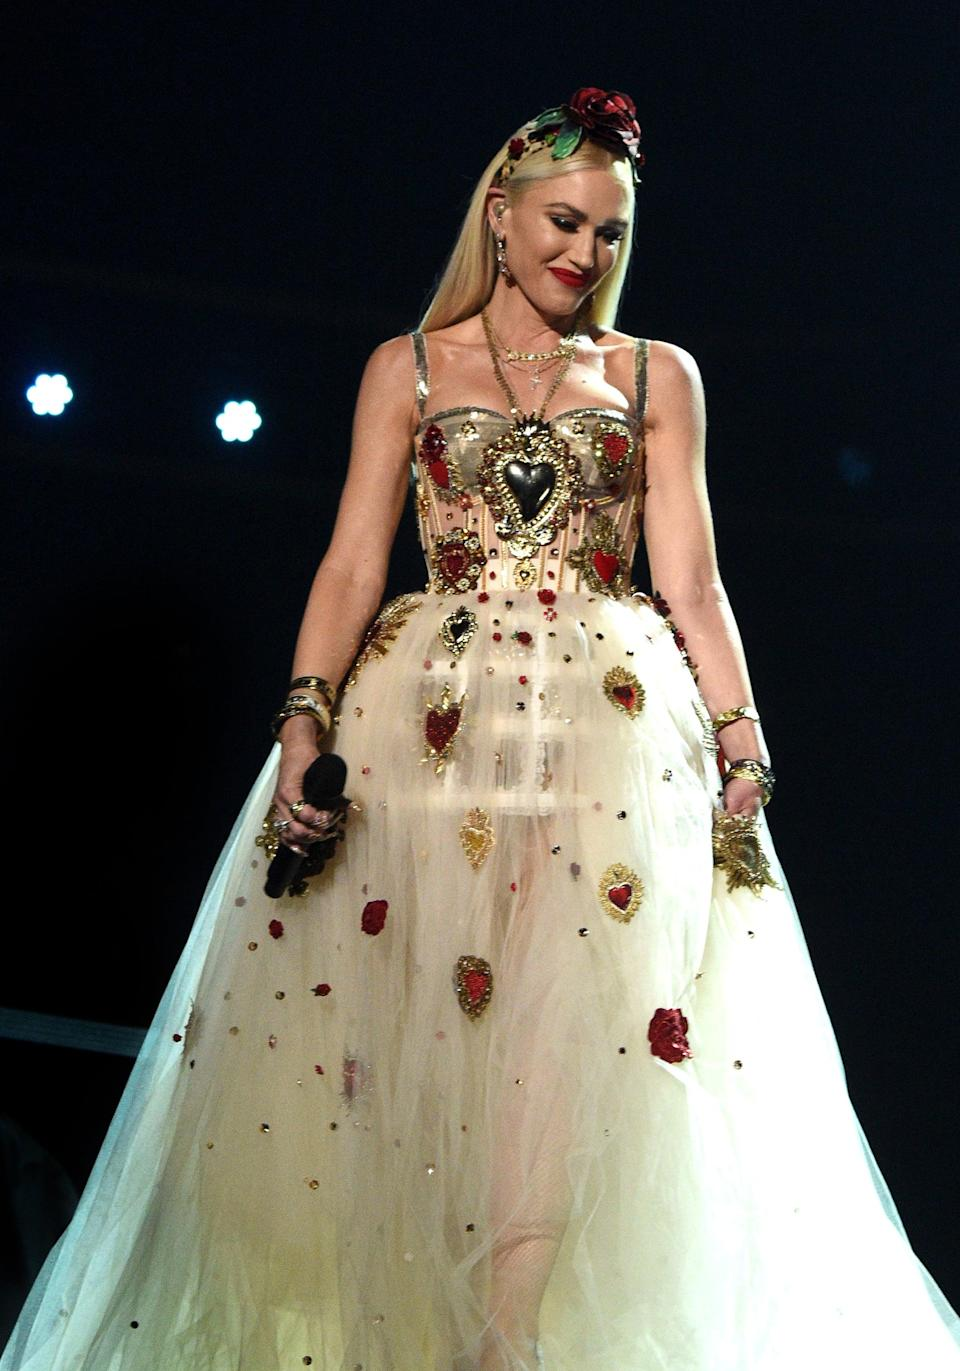 <p>She wore this Dolce & Gabbana number to perform at the 2020 Grammy Awards alongside Blake Shelton.</p>